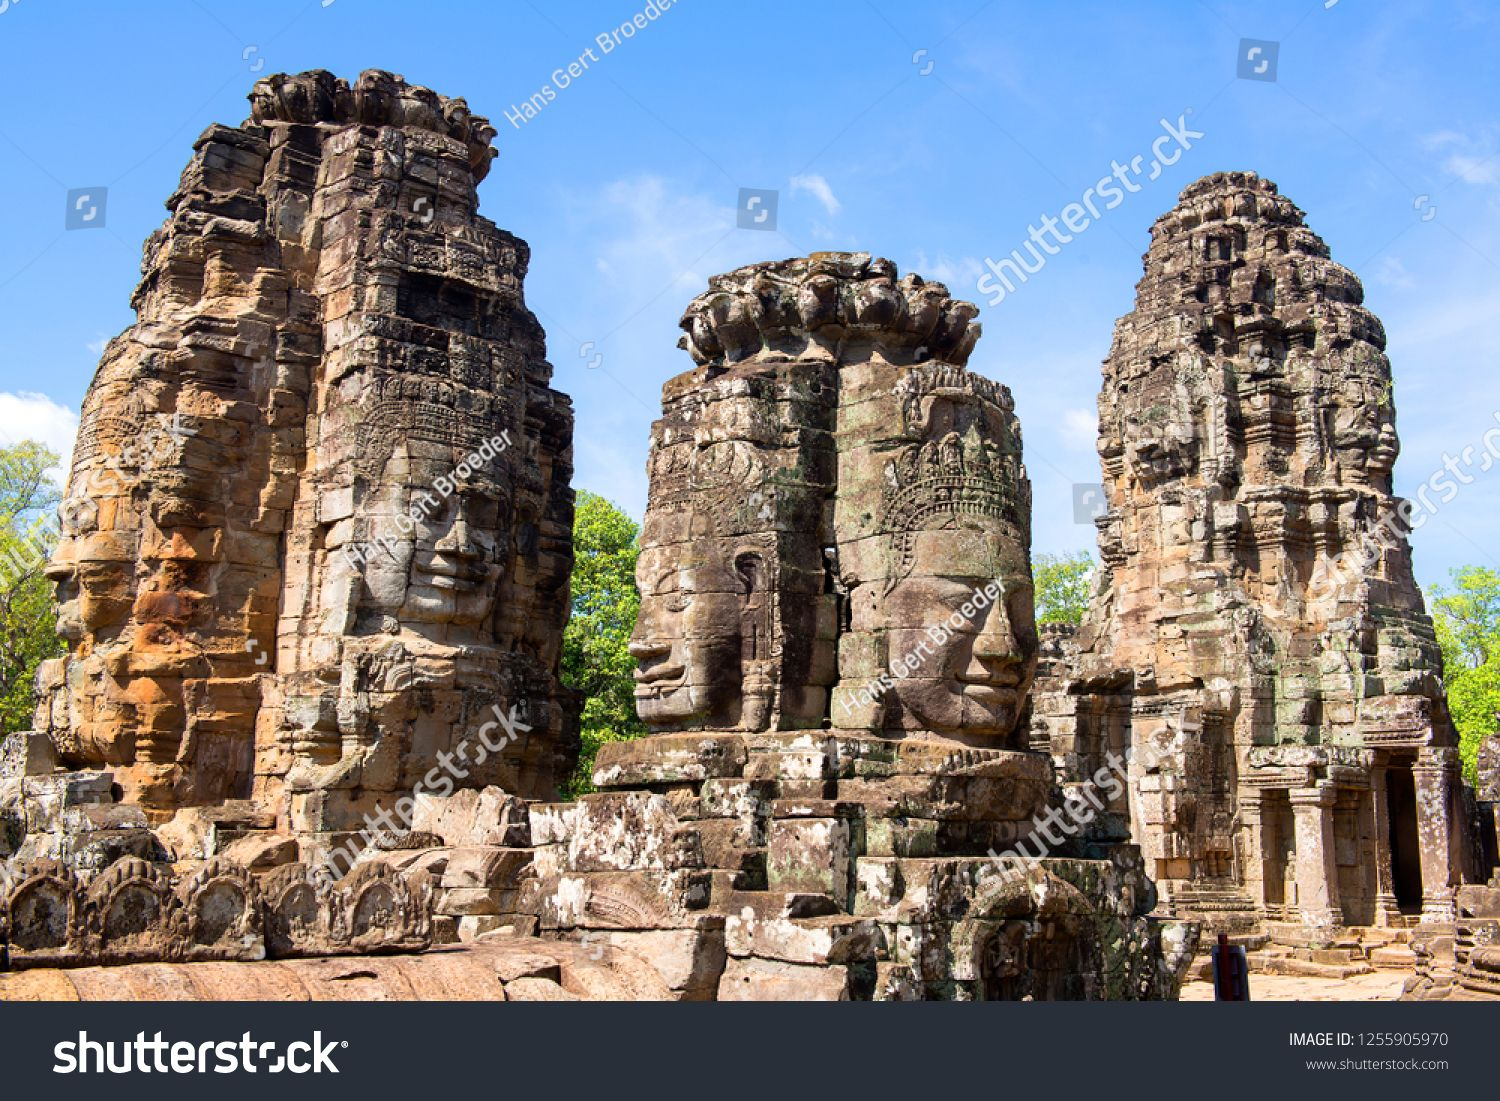 Faces of Bayon temple in Angkor Thom, Siemreap, Cambodia. The Prasat Bayon is a richly decorated Khmer temple at Angkor , ancient architecture in Cambodia #Sponsored , #ad, #Angkor#Thom#Siemreap#Faces